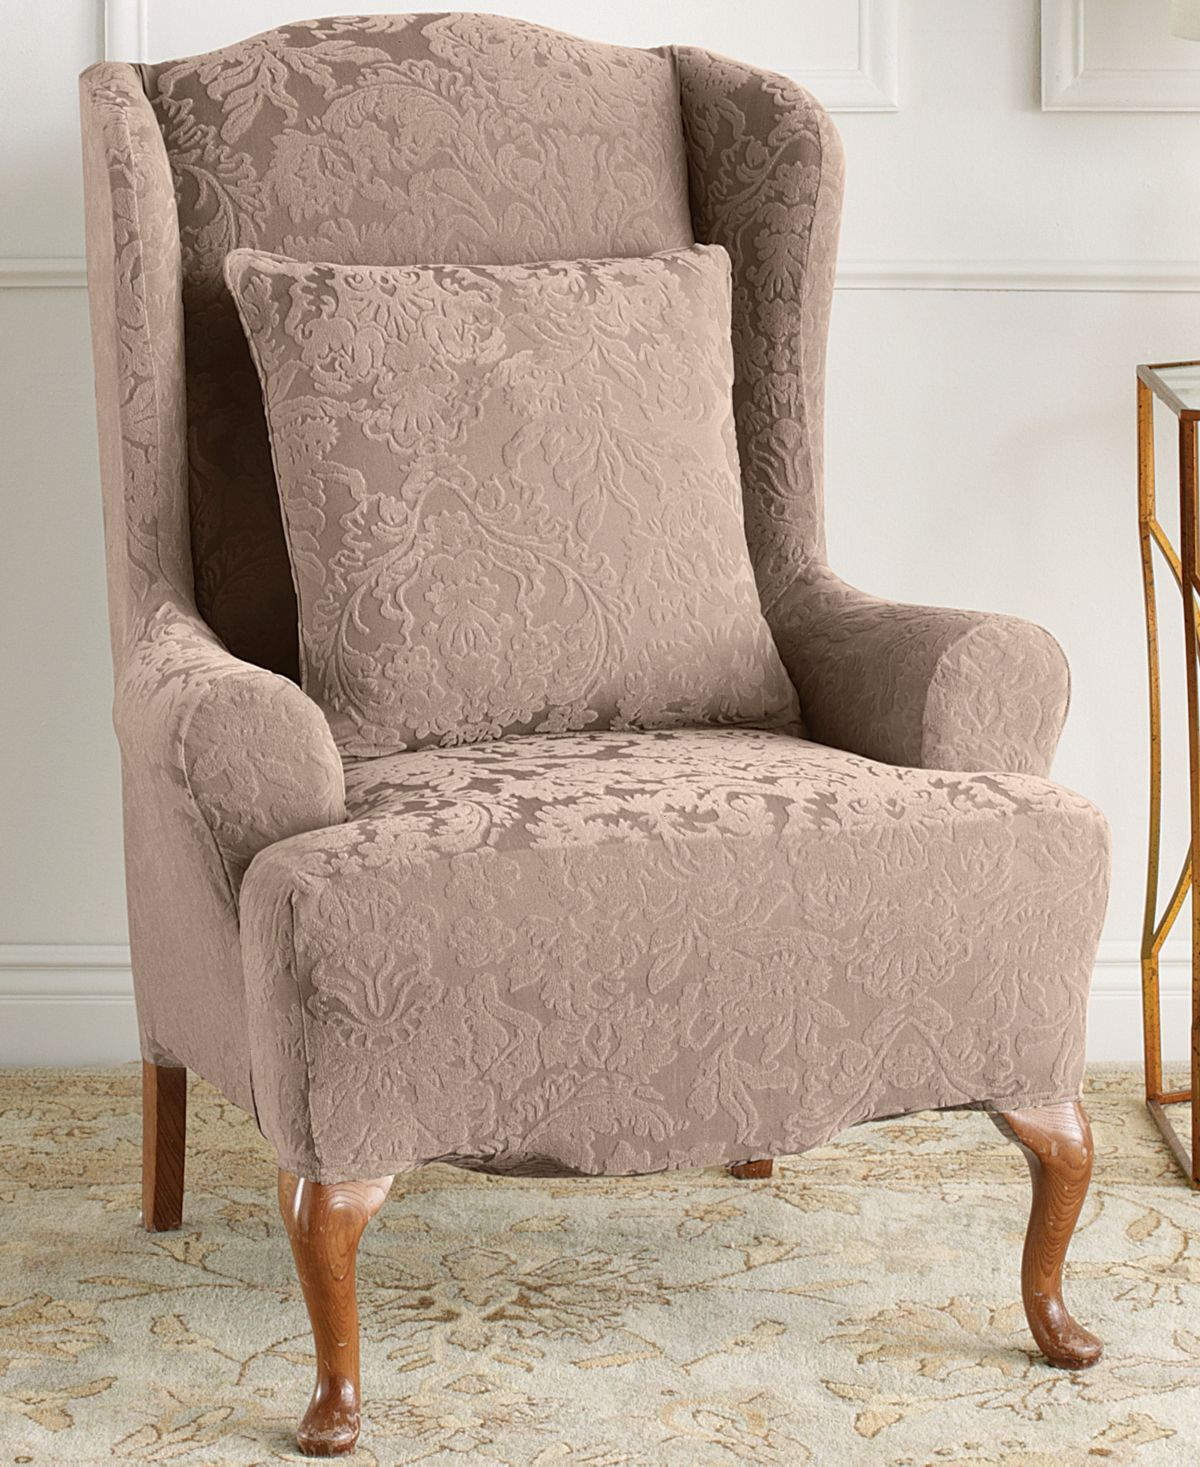 Sure Fit Stretch Jacquard Damask Wing Chair Slipcover Reviews Slipcovers Home Decor Macy S Slipcovers For Chairs Wingback Chair Slipcovers Slipcovers